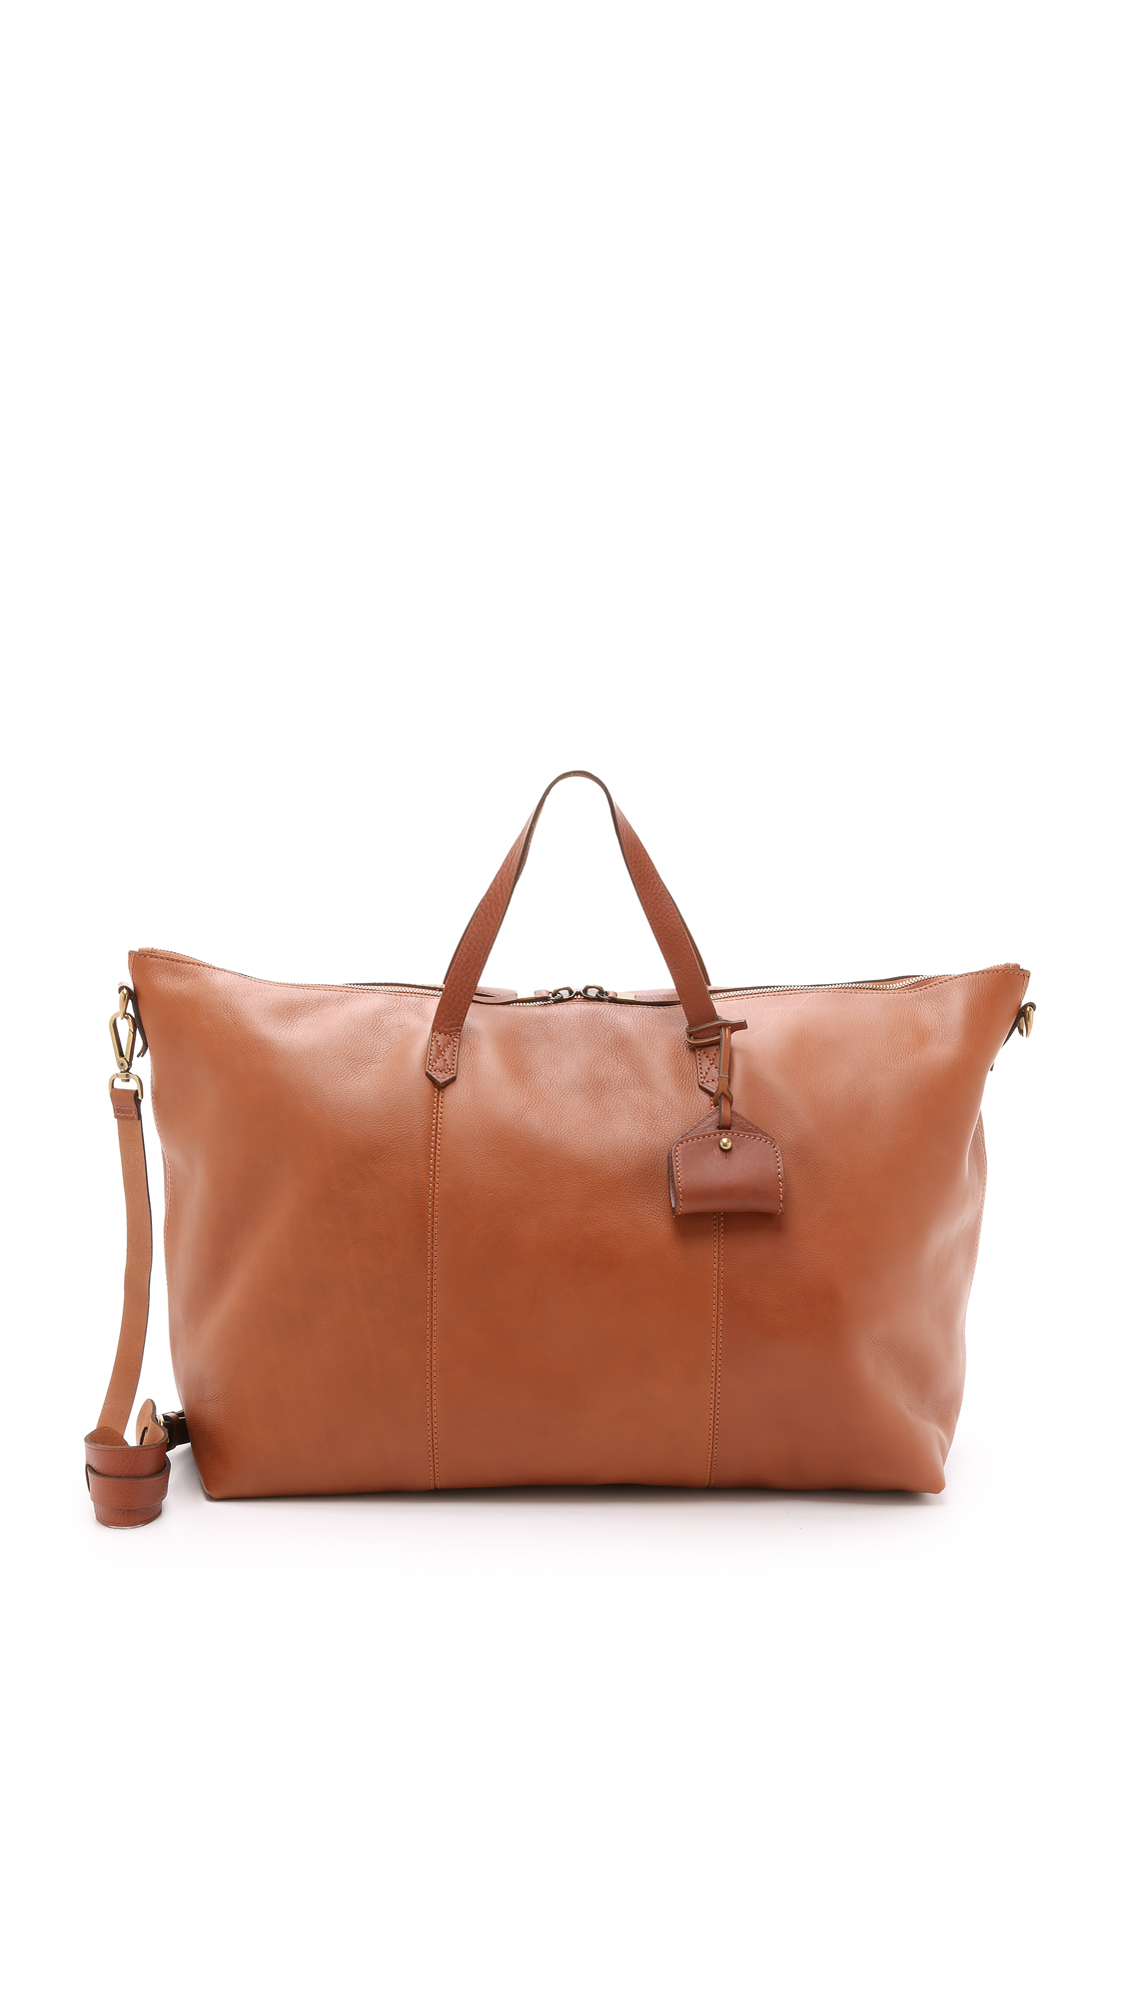 Madewell 'Transport' Weekend Bag - Brown In English Saddle